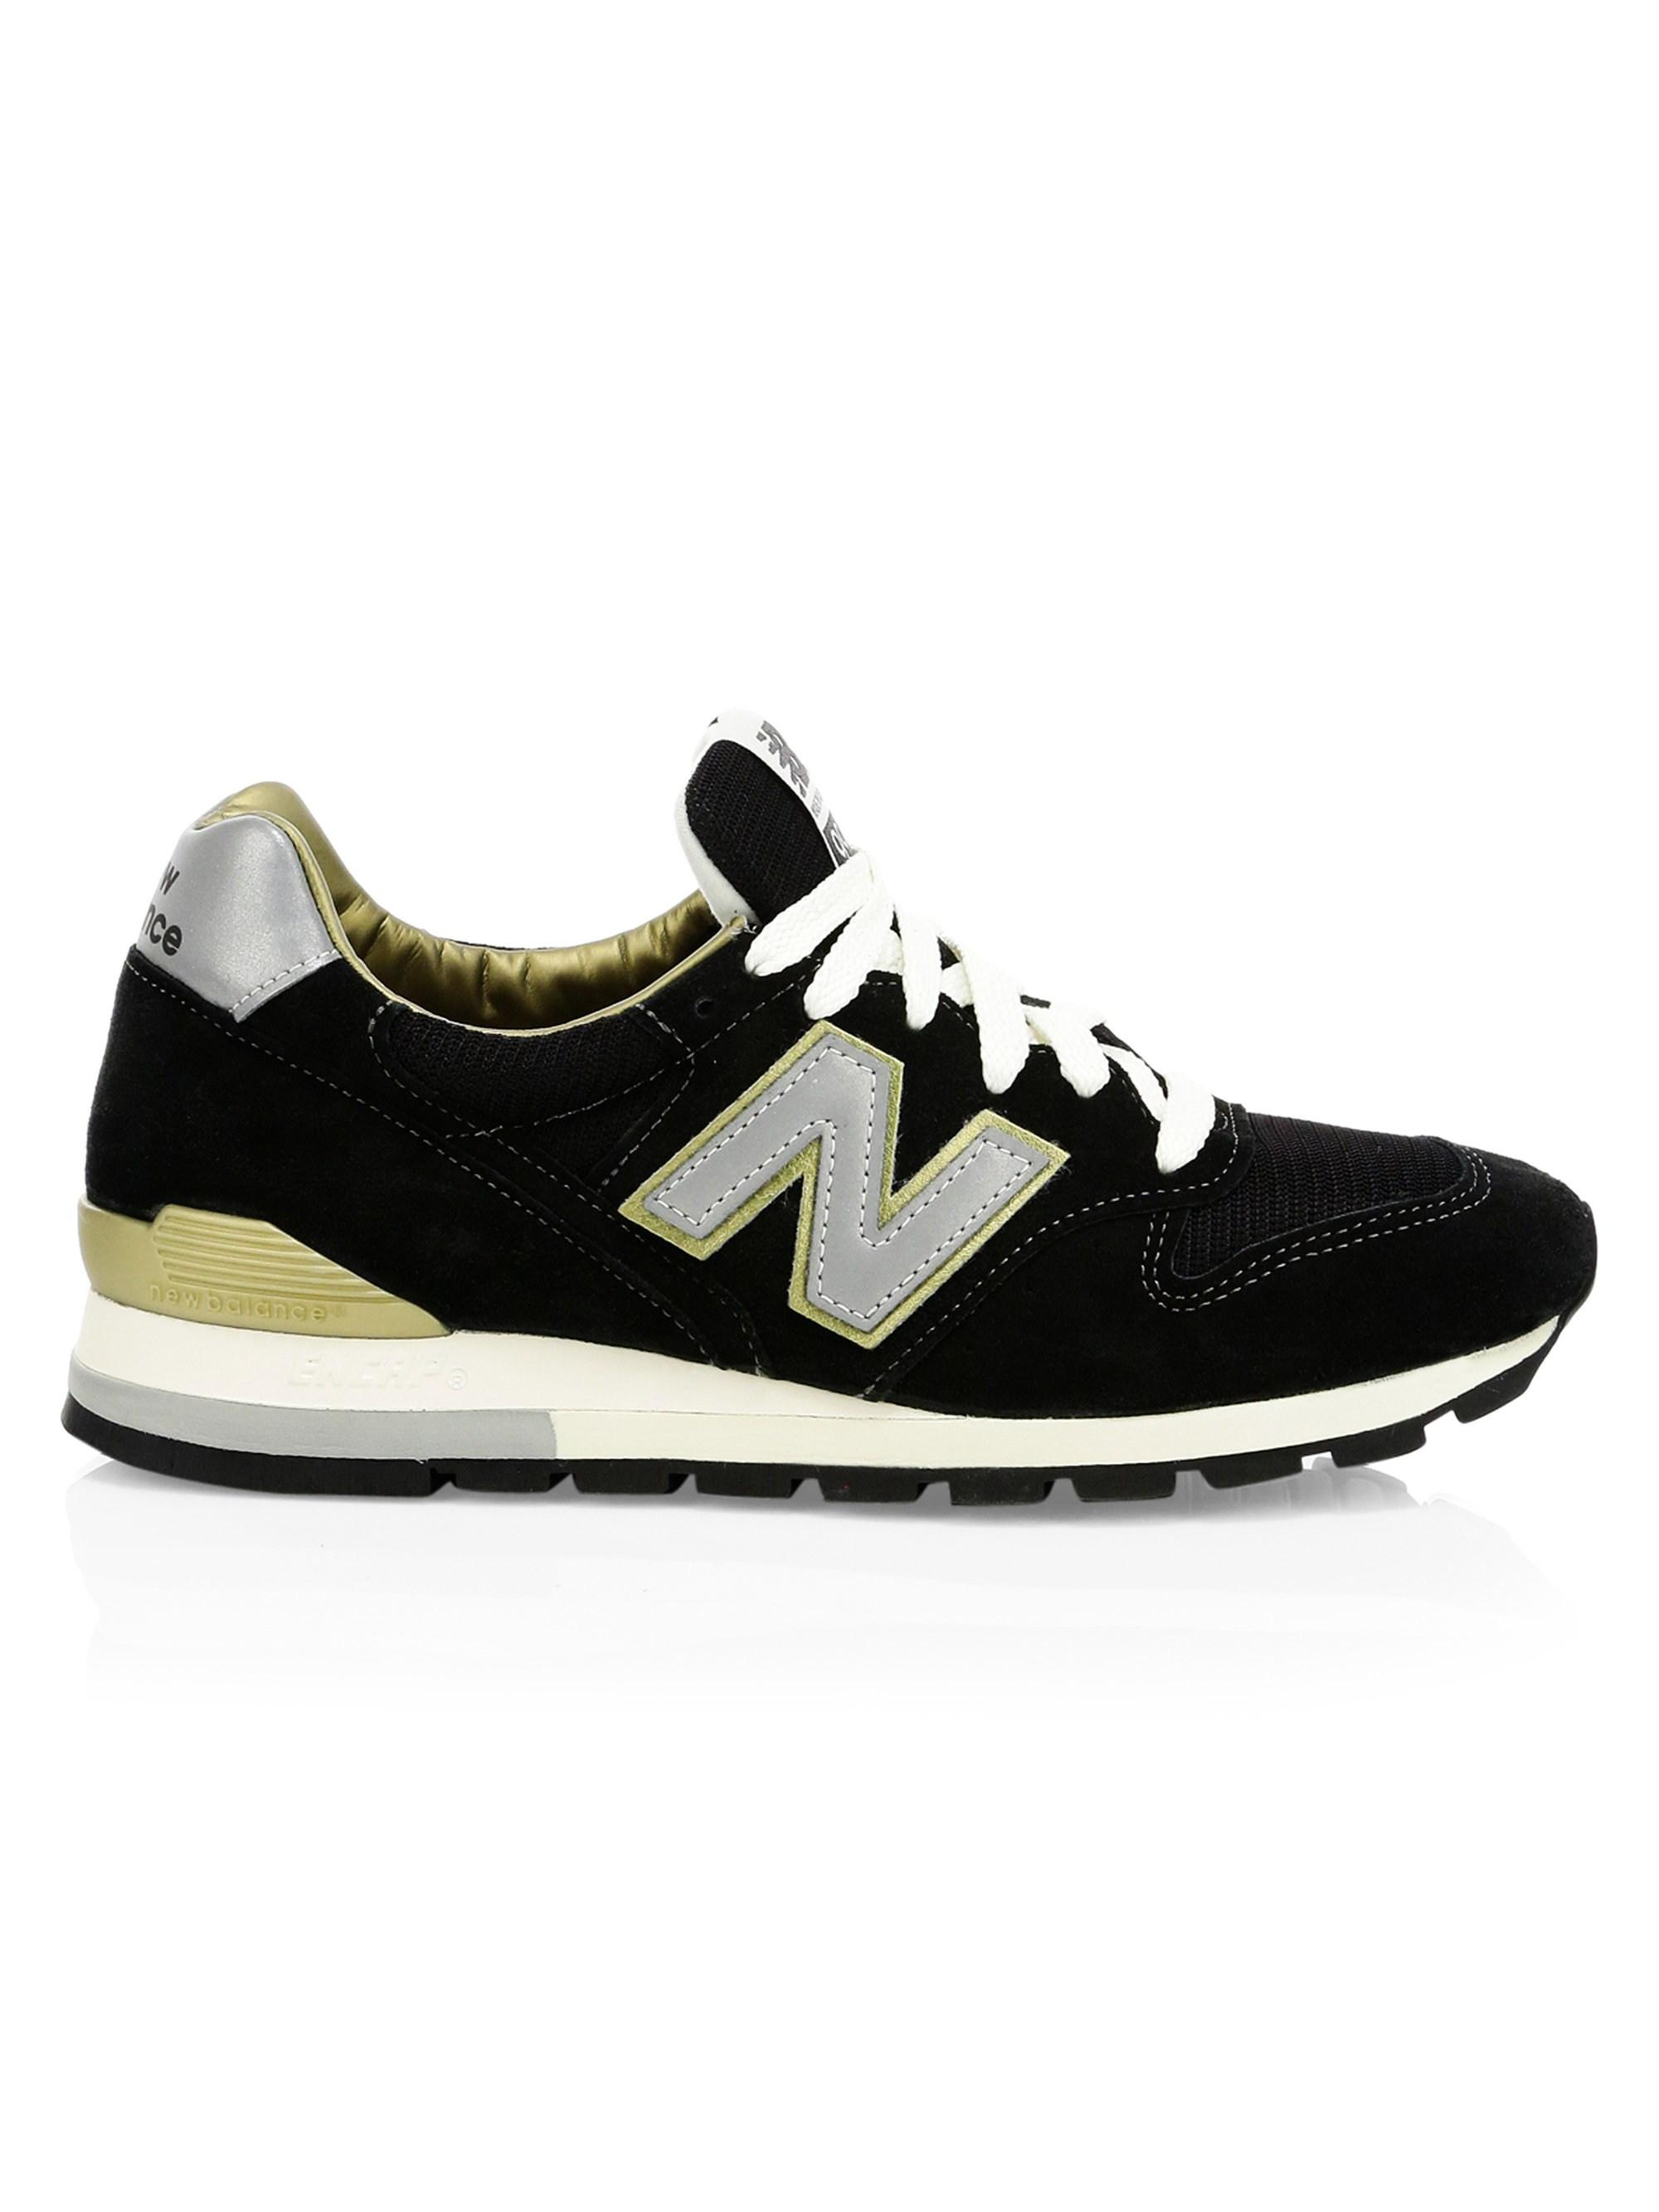 87b5c79f9dcdf New Balance - Men's 996 Made In Usa Suede Sneakers - Black - Size 7.5 D